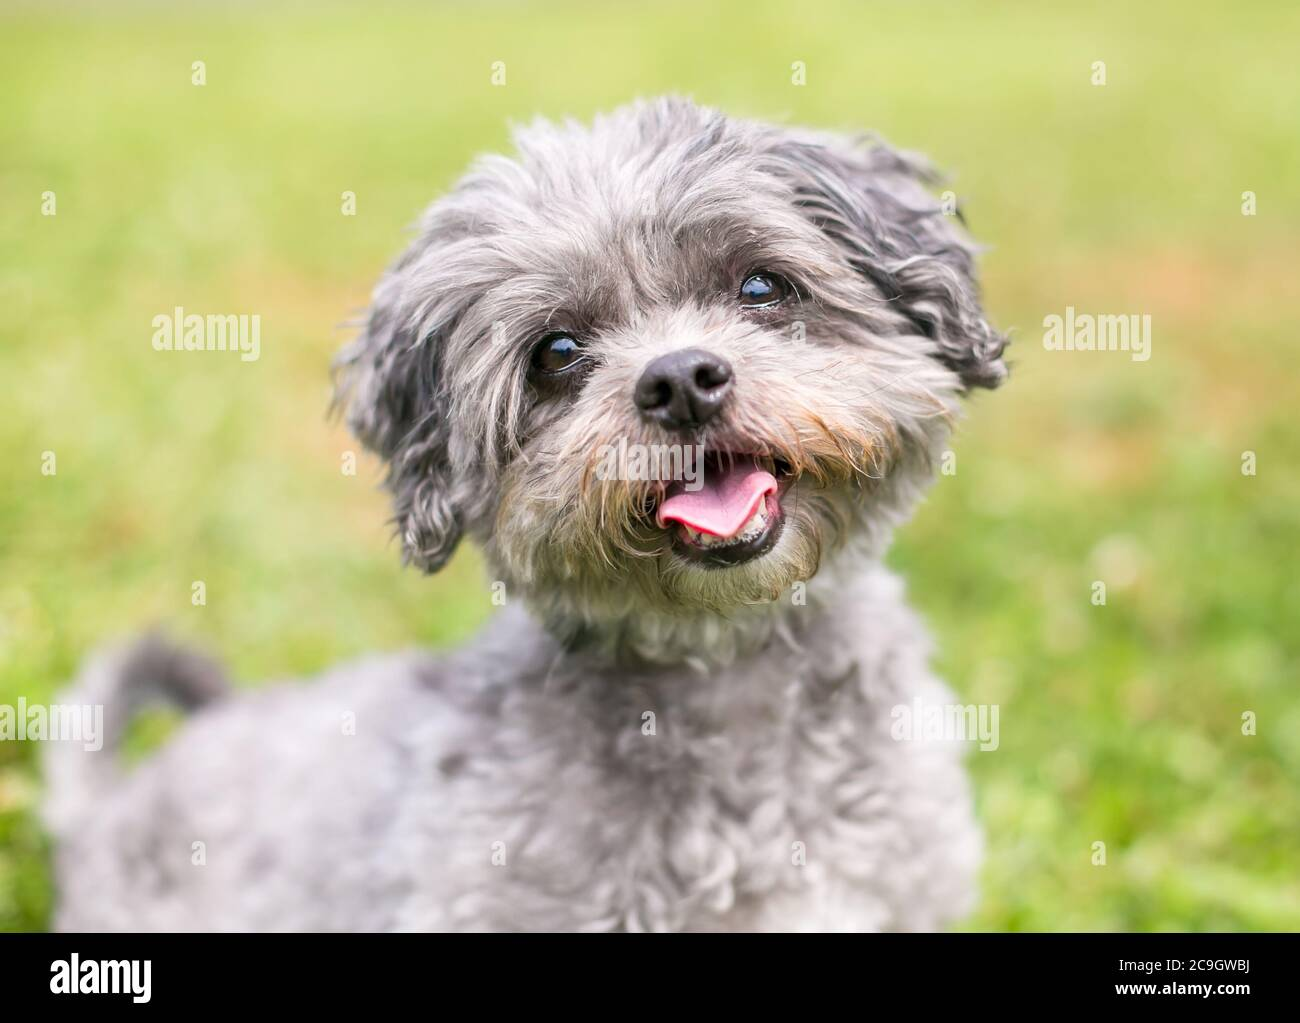 Shih Tzu Poodle High Resolution Stock Photography And Images Alamy